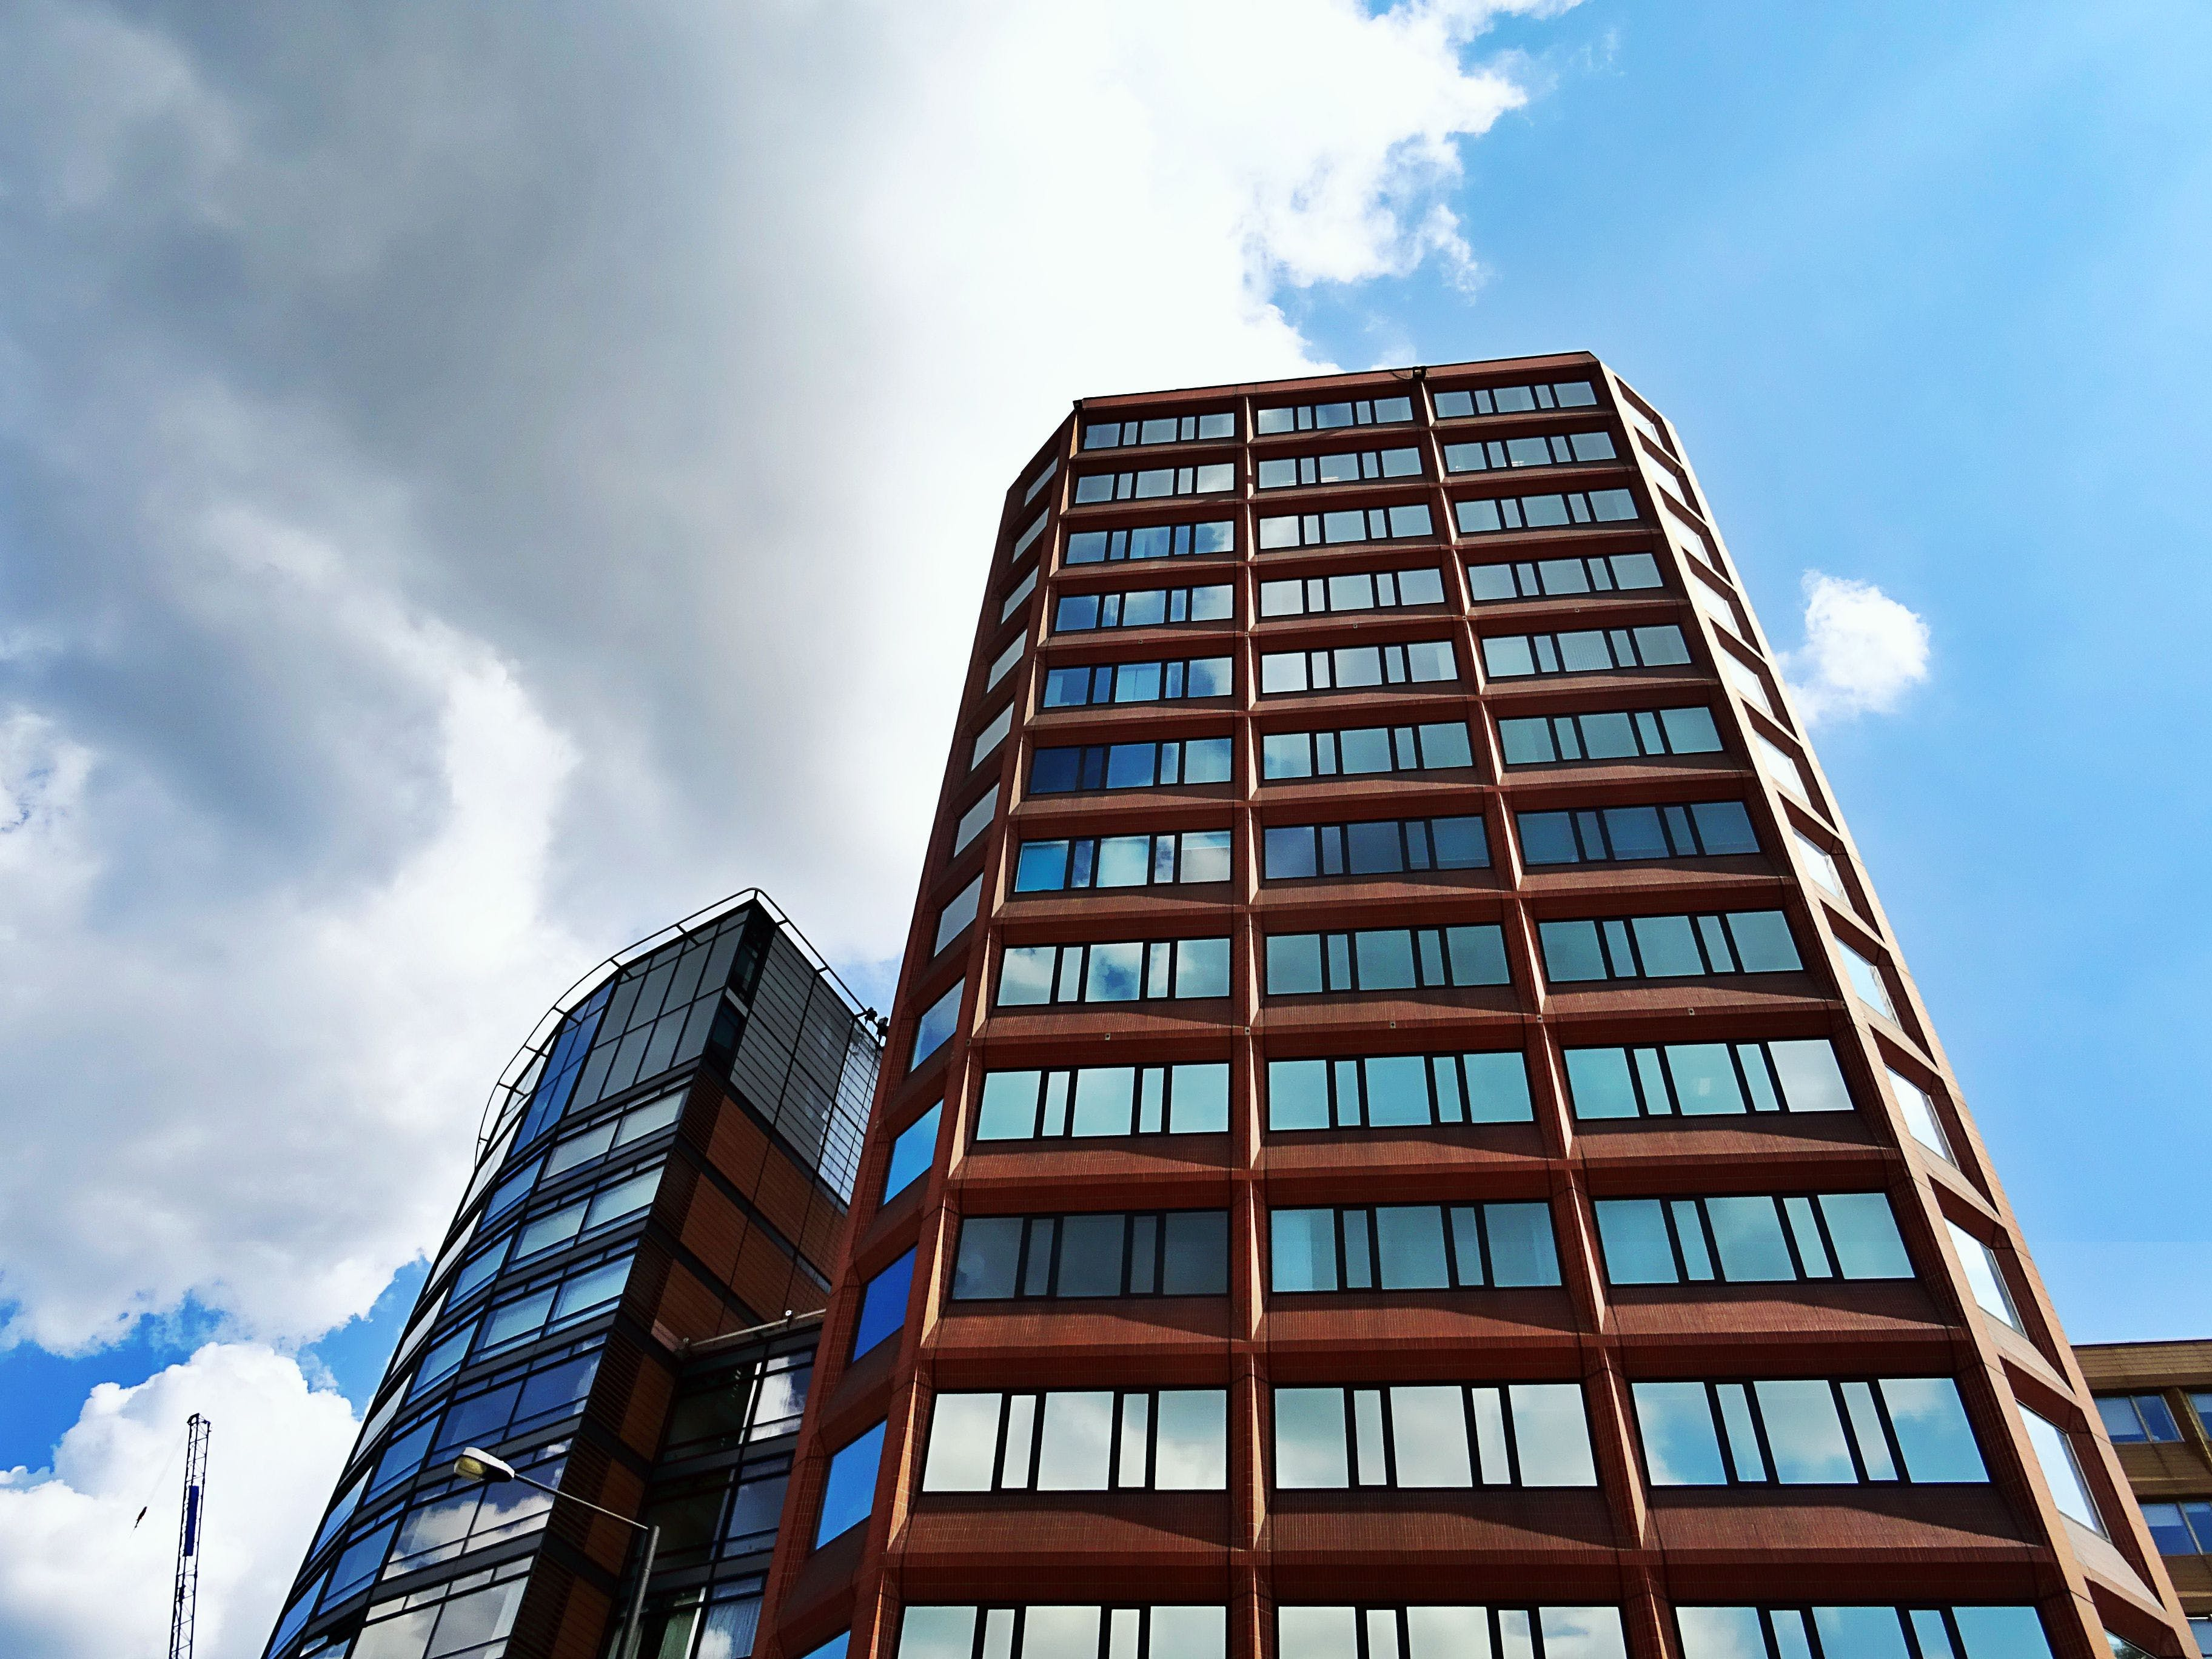 Low Angle Photography of Brown Concrete Building Under Blue Sky